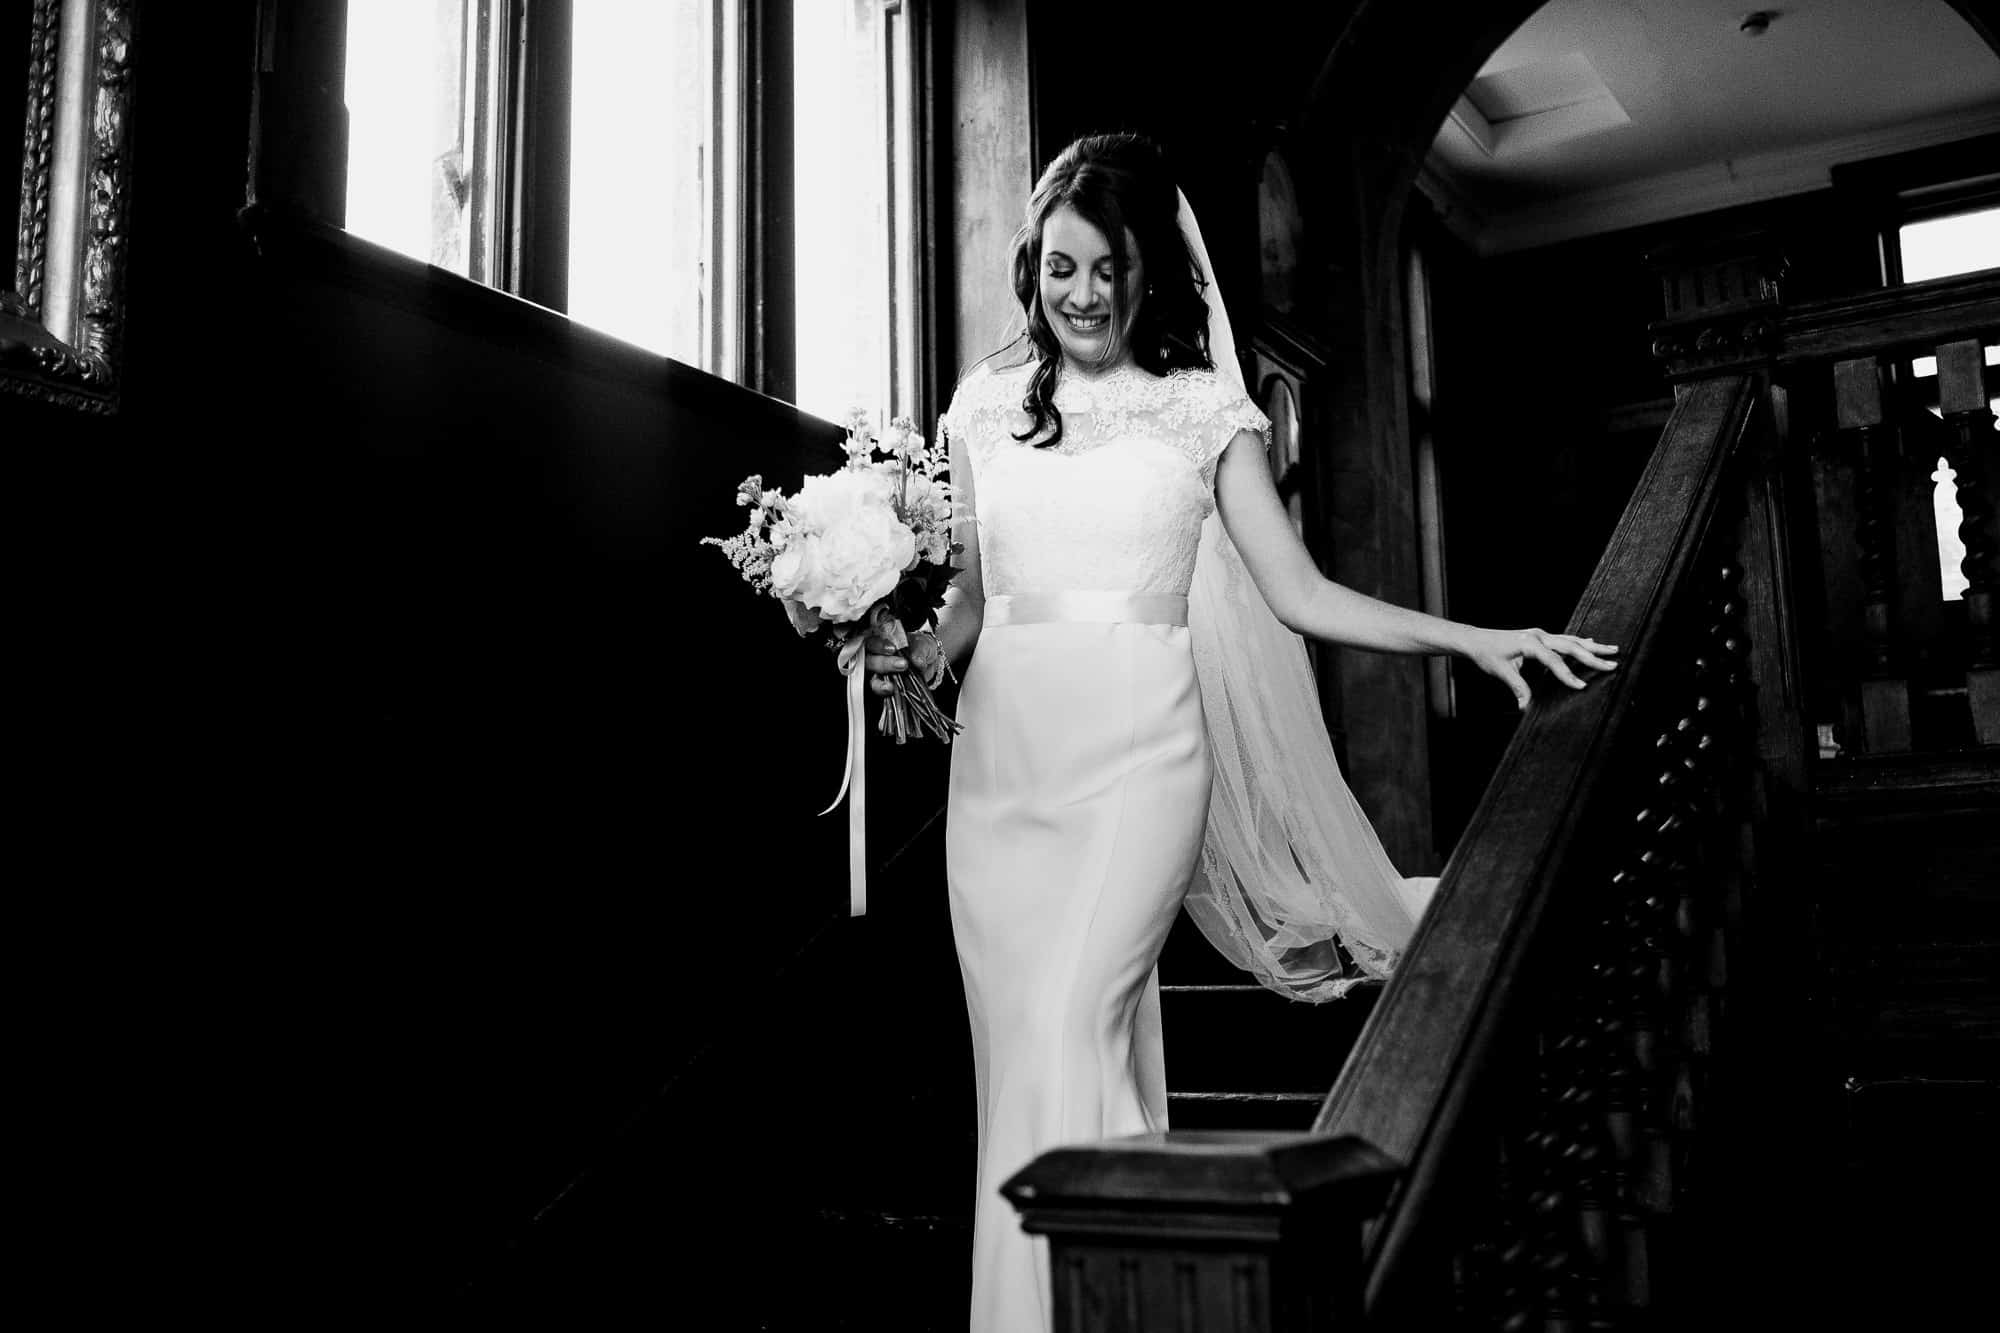 huntsham-court-wedding-photography-matt-tyler-0020